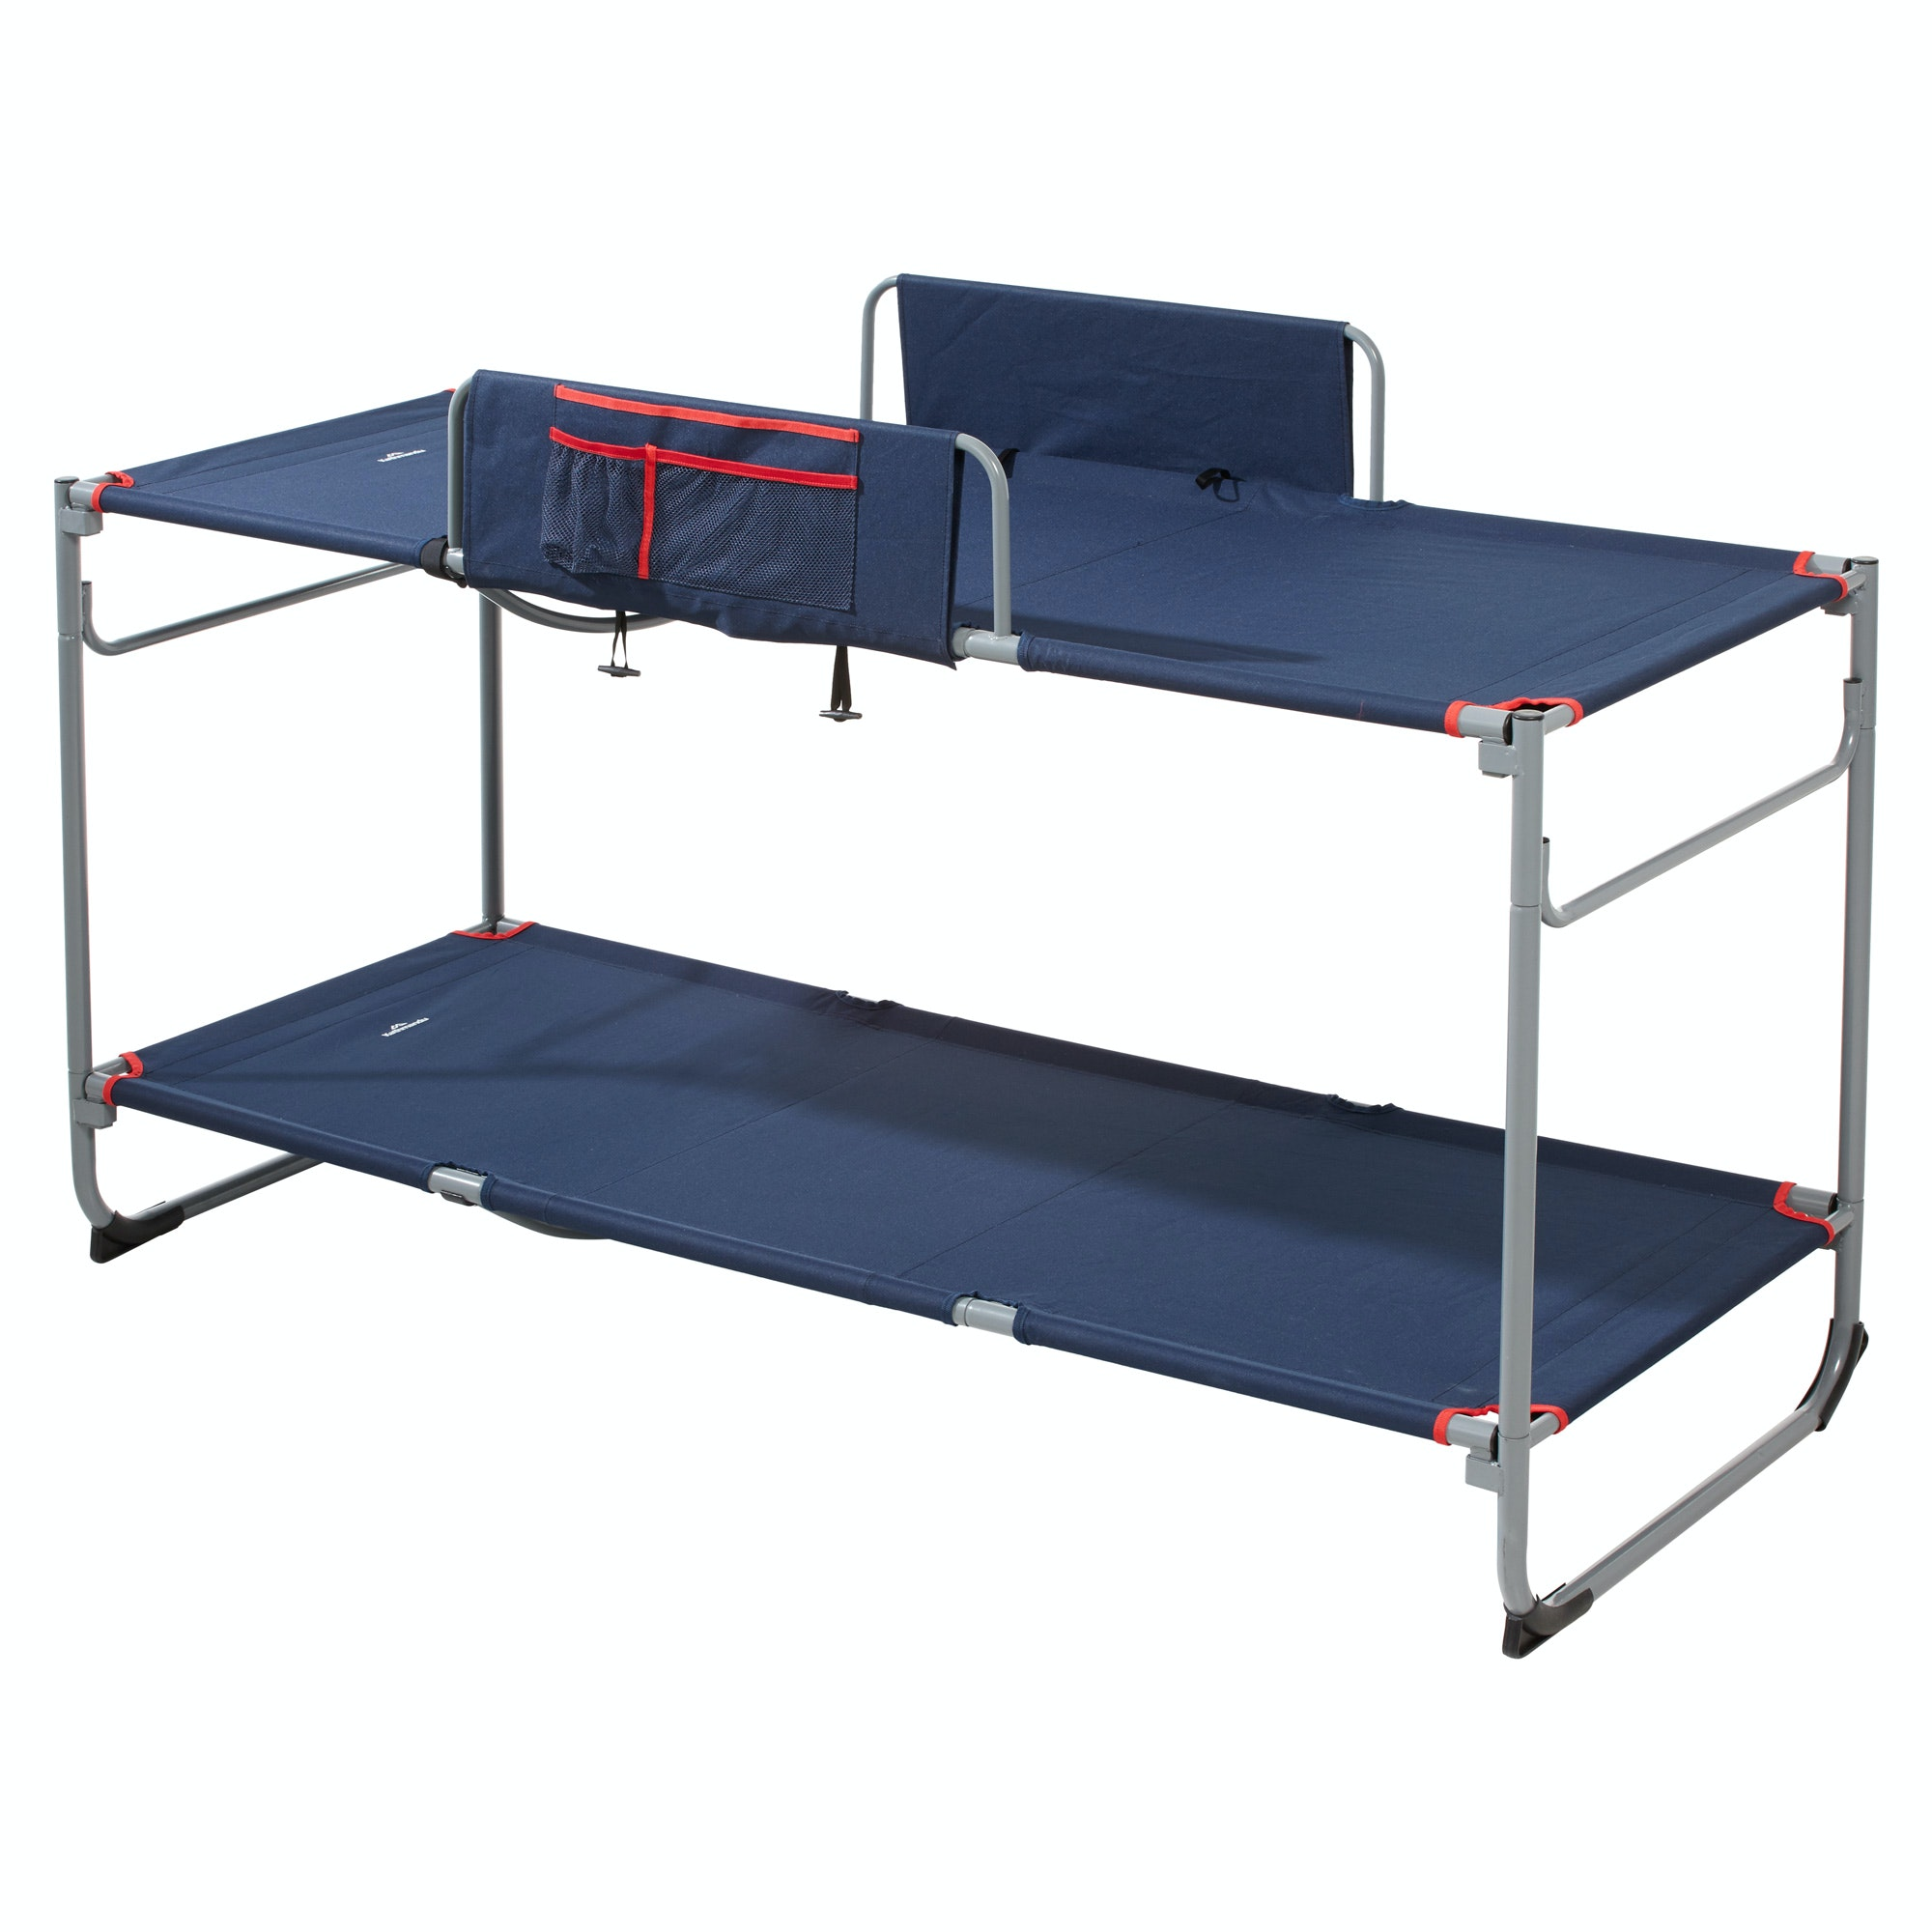 King Single Loft Beds Australia Camp Bed Stretchers Camping Beds For Tents For Sale In Australia